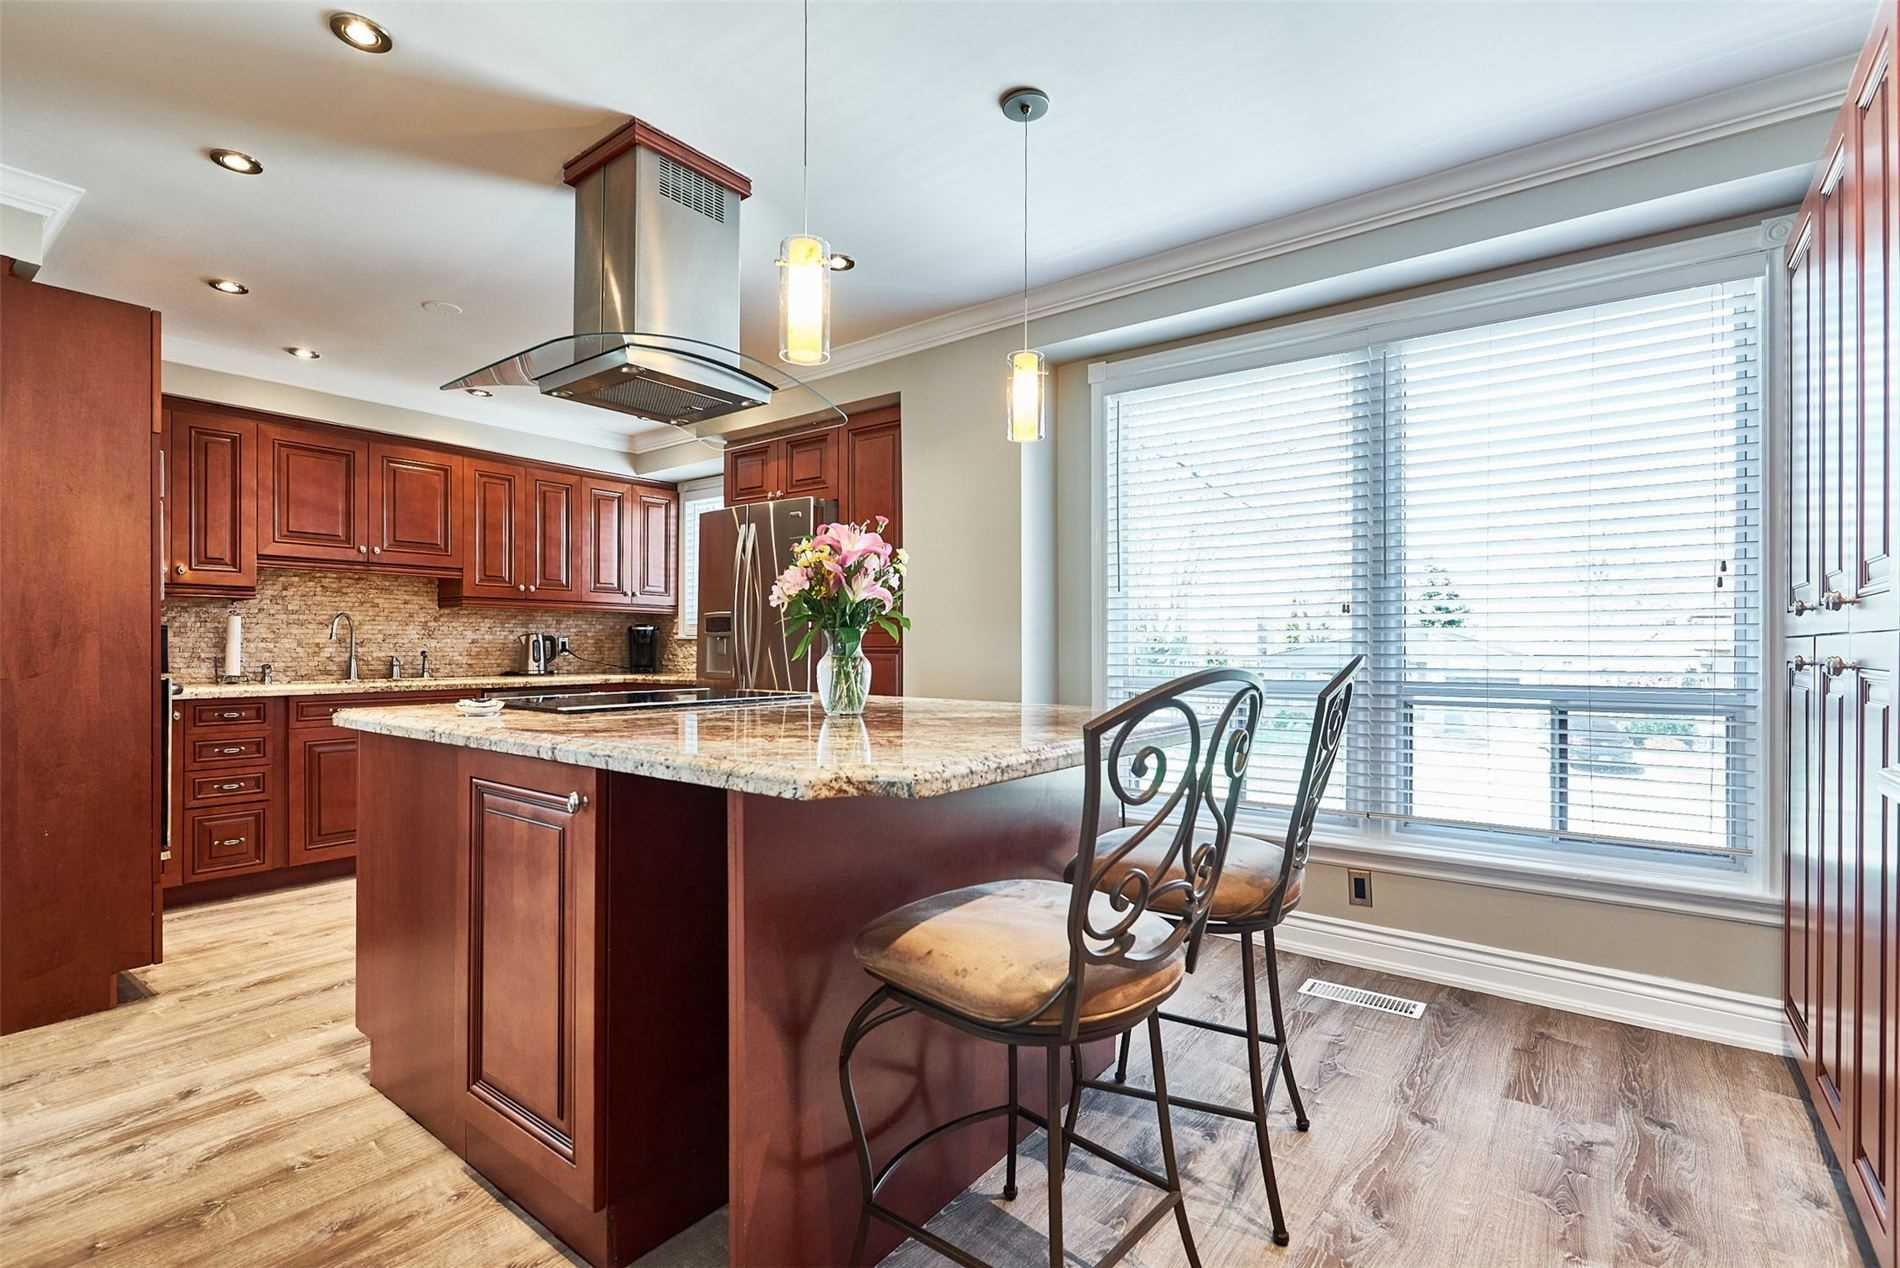 Image 33 of 33 showing inside of 3 Bedroom Condo Townhouse 2-Storey for Sale at 33 Clover Ridge Dr W Unit# 9, Ajax L1S3M5